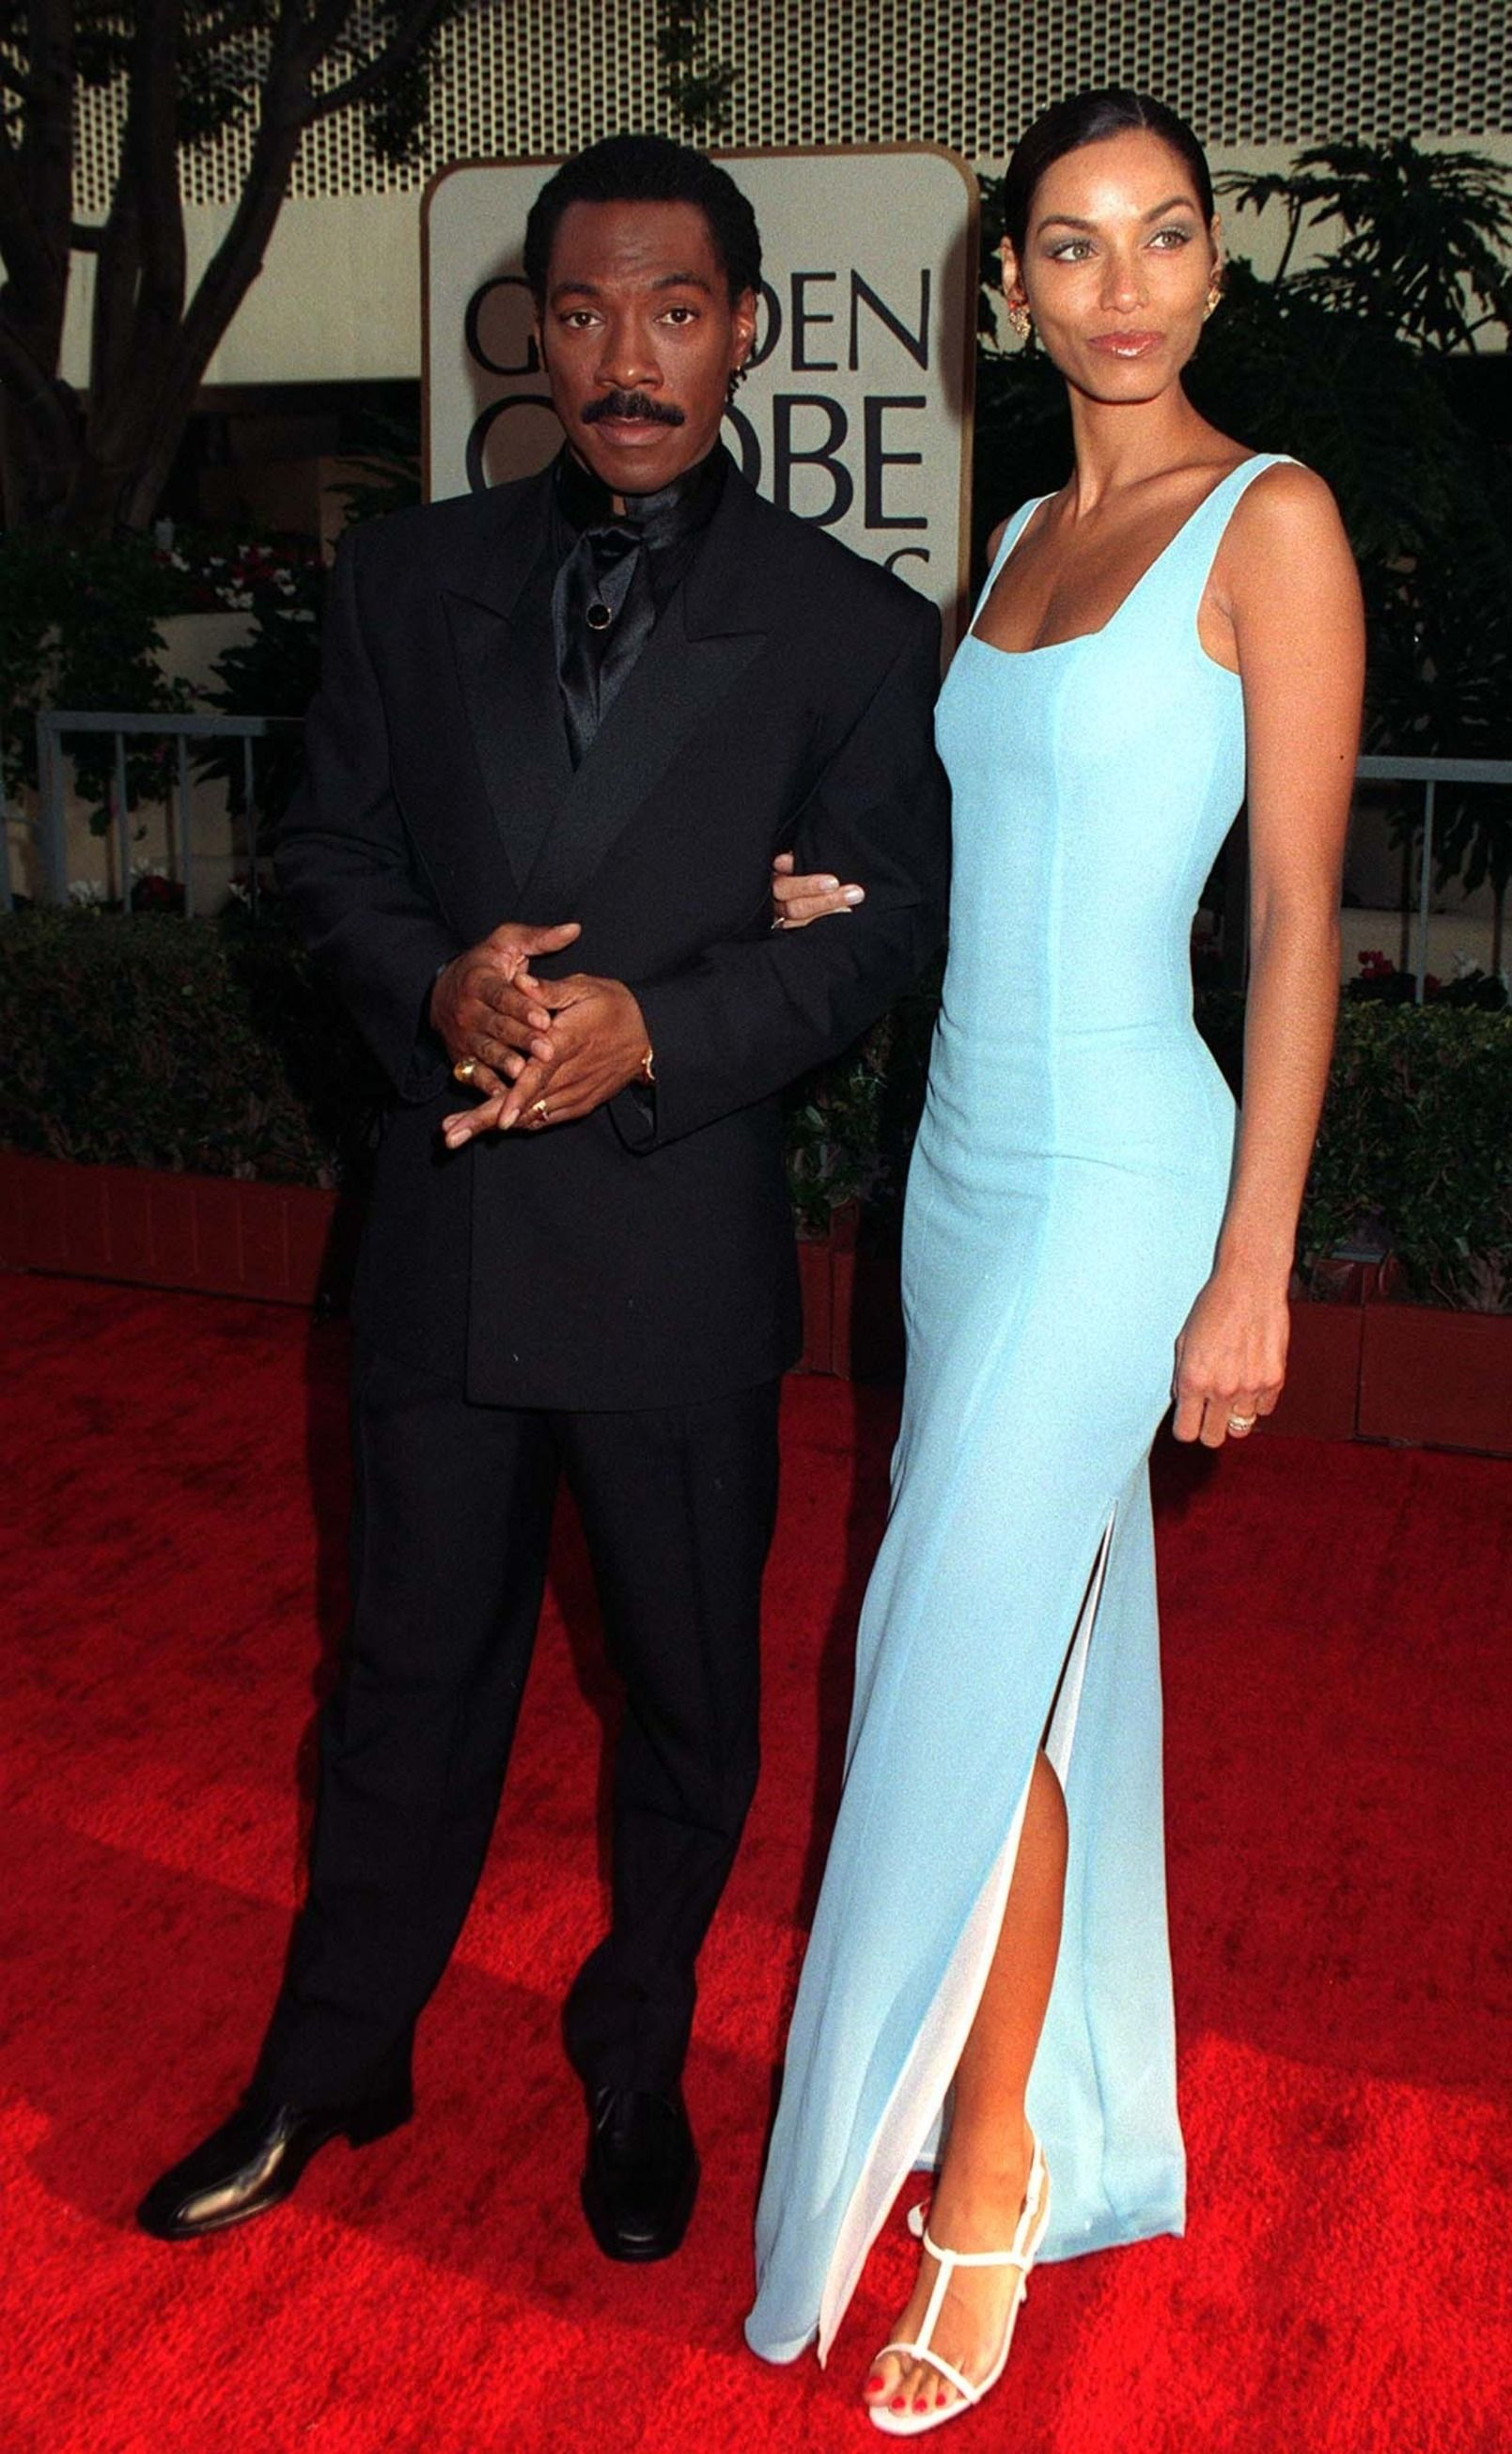 L'acteur EDDIE MURPHY & son épouse NICOLE aux Golden Globe Awards. | Photo : Shutterstock